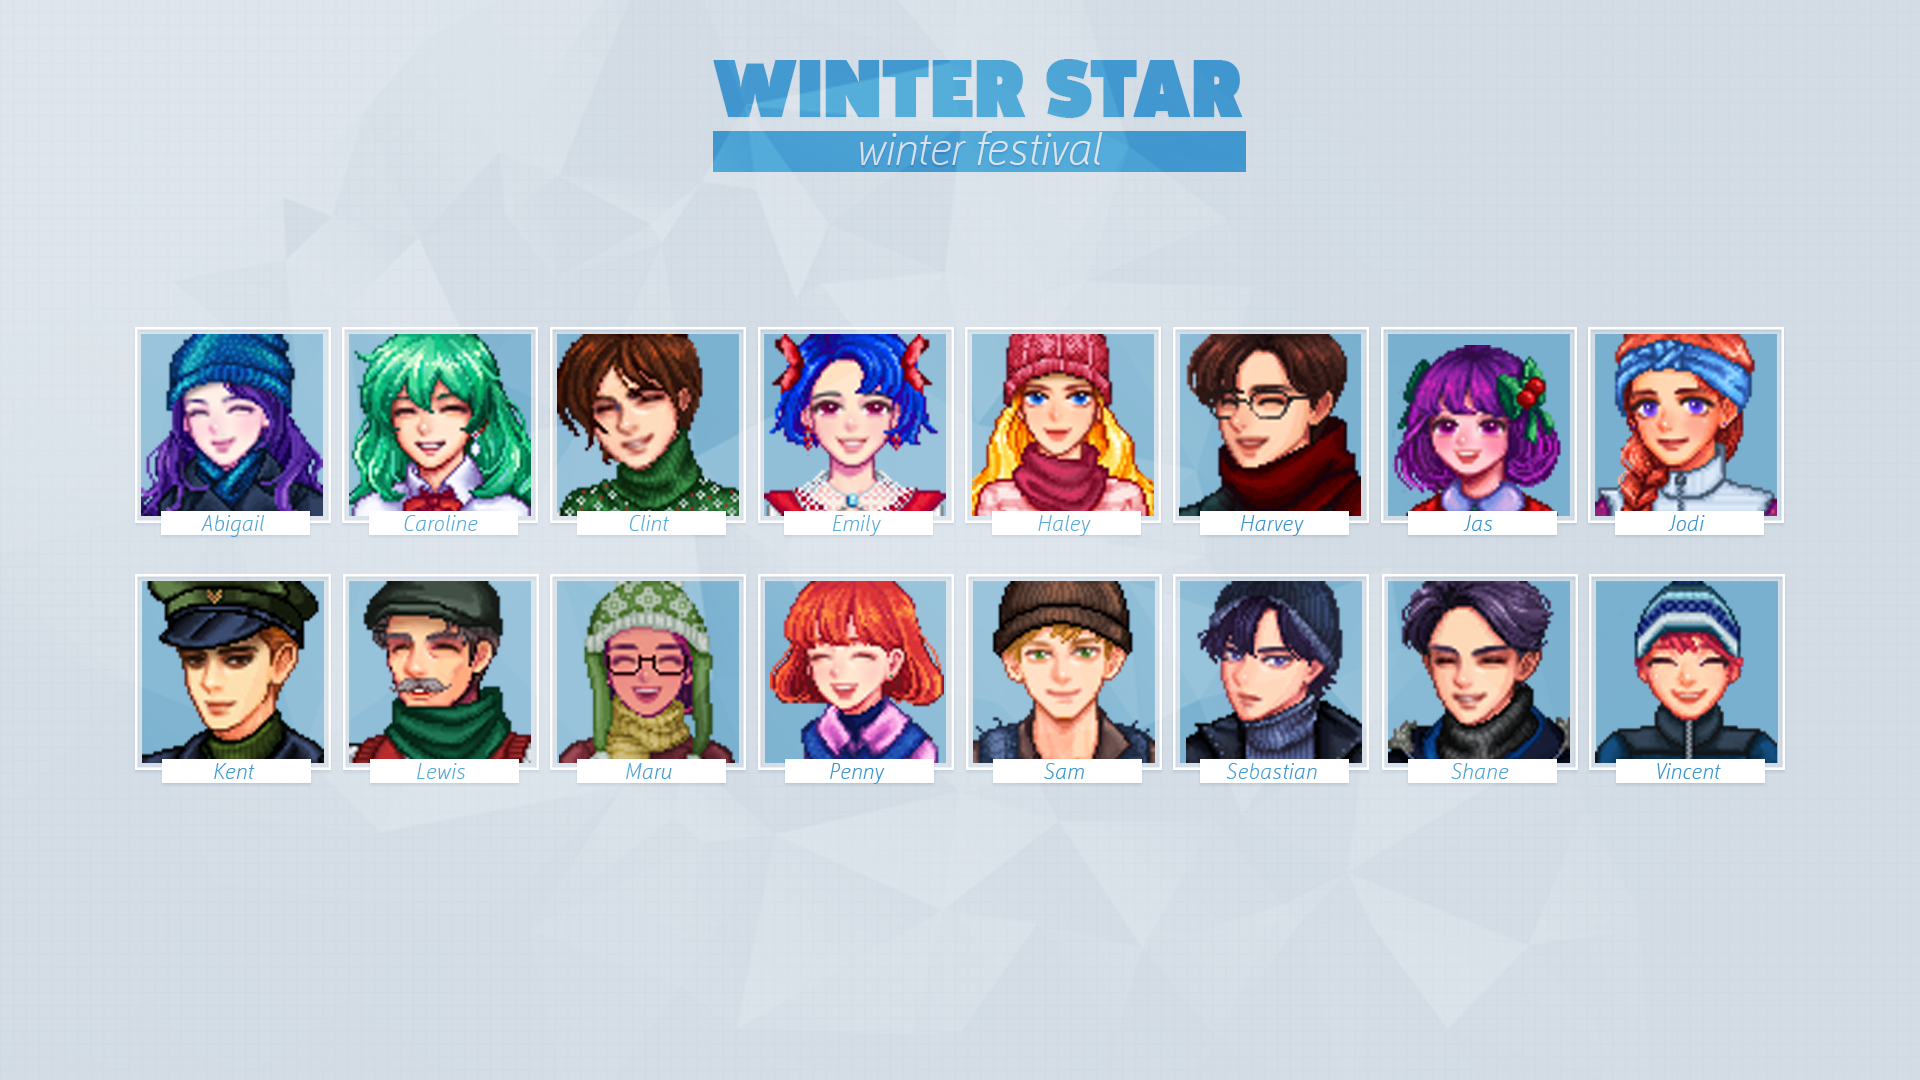 Baechu S Portraits For Seasonal Villager Outfits At Stardew Valley Nexus Mods And Community Stardew Valley Custom Portraits Portrait